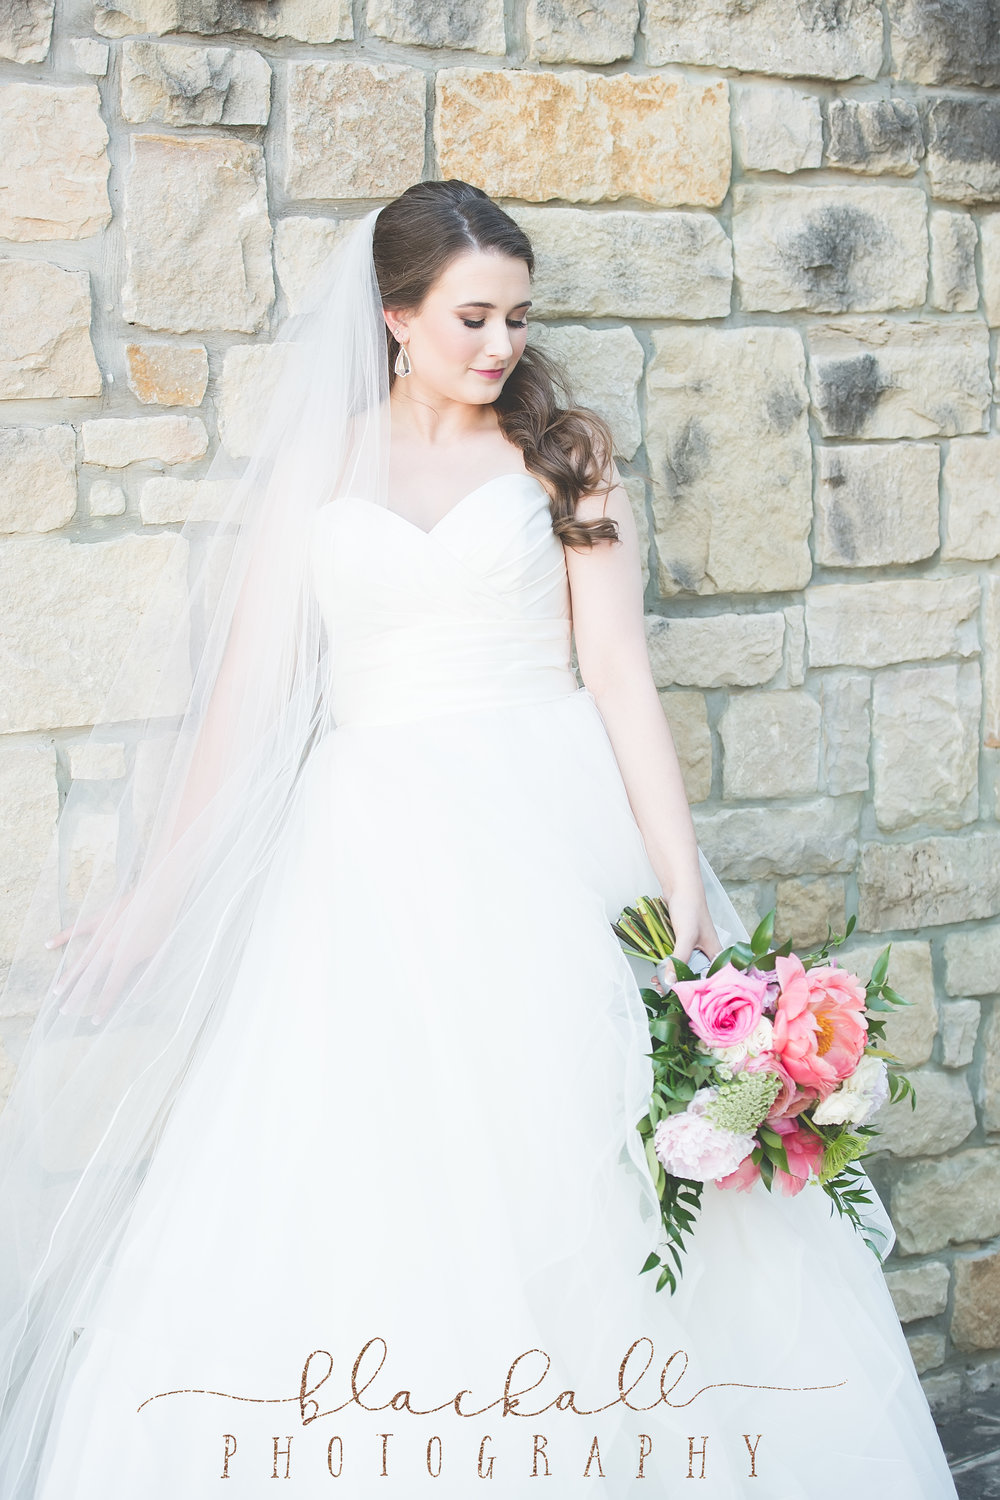 BRIDAL_BlackallPhotography_27.JPG